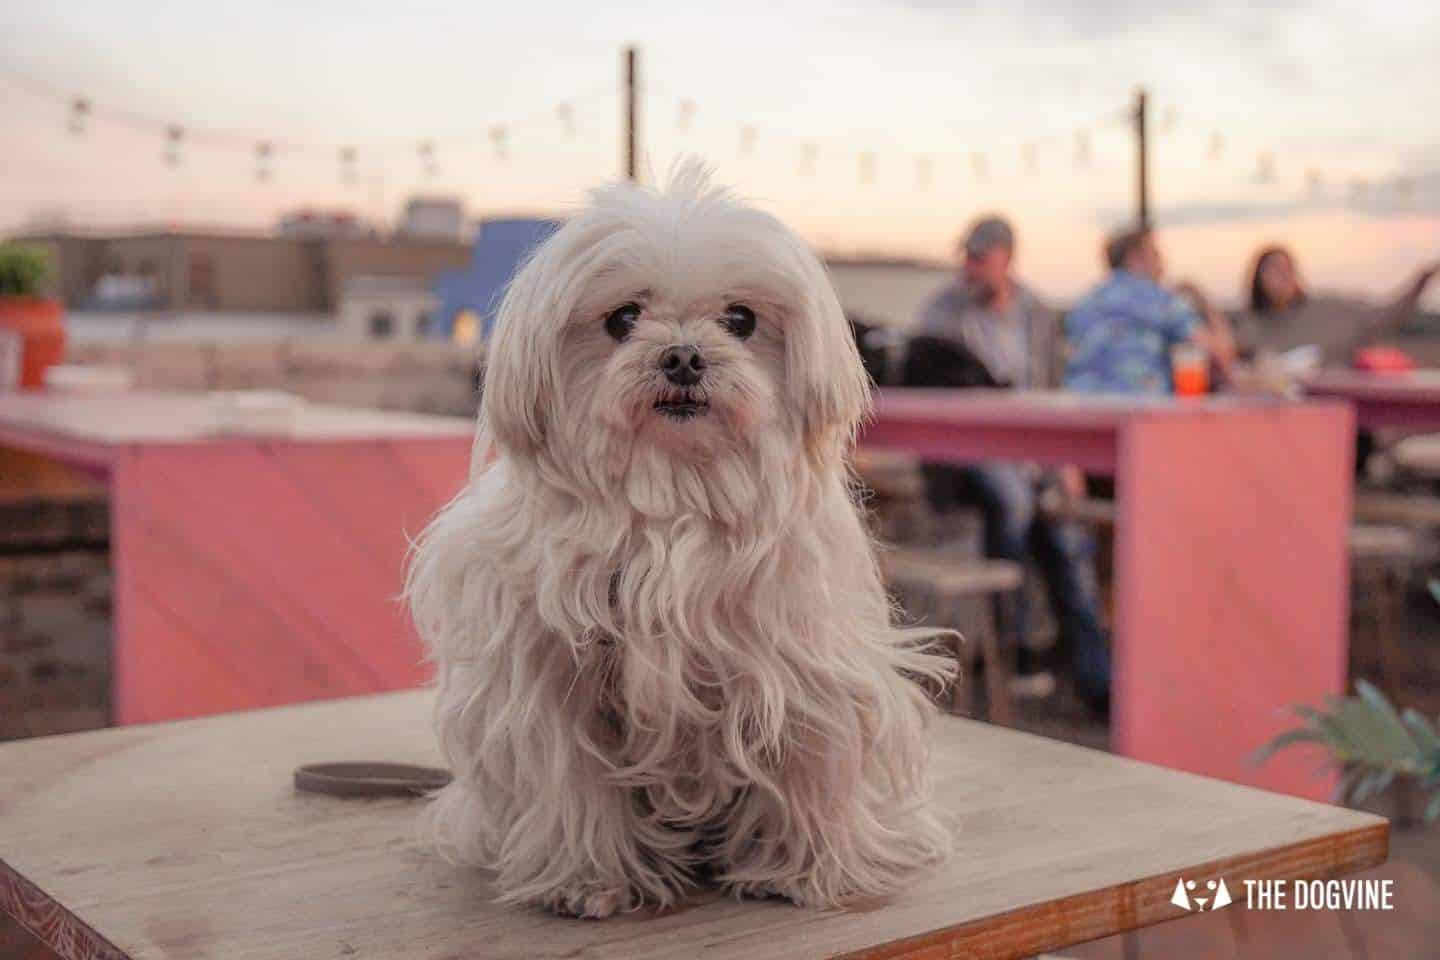 Spectacular Movie Moments at the Dog-friendly Rooftop Film Club 32